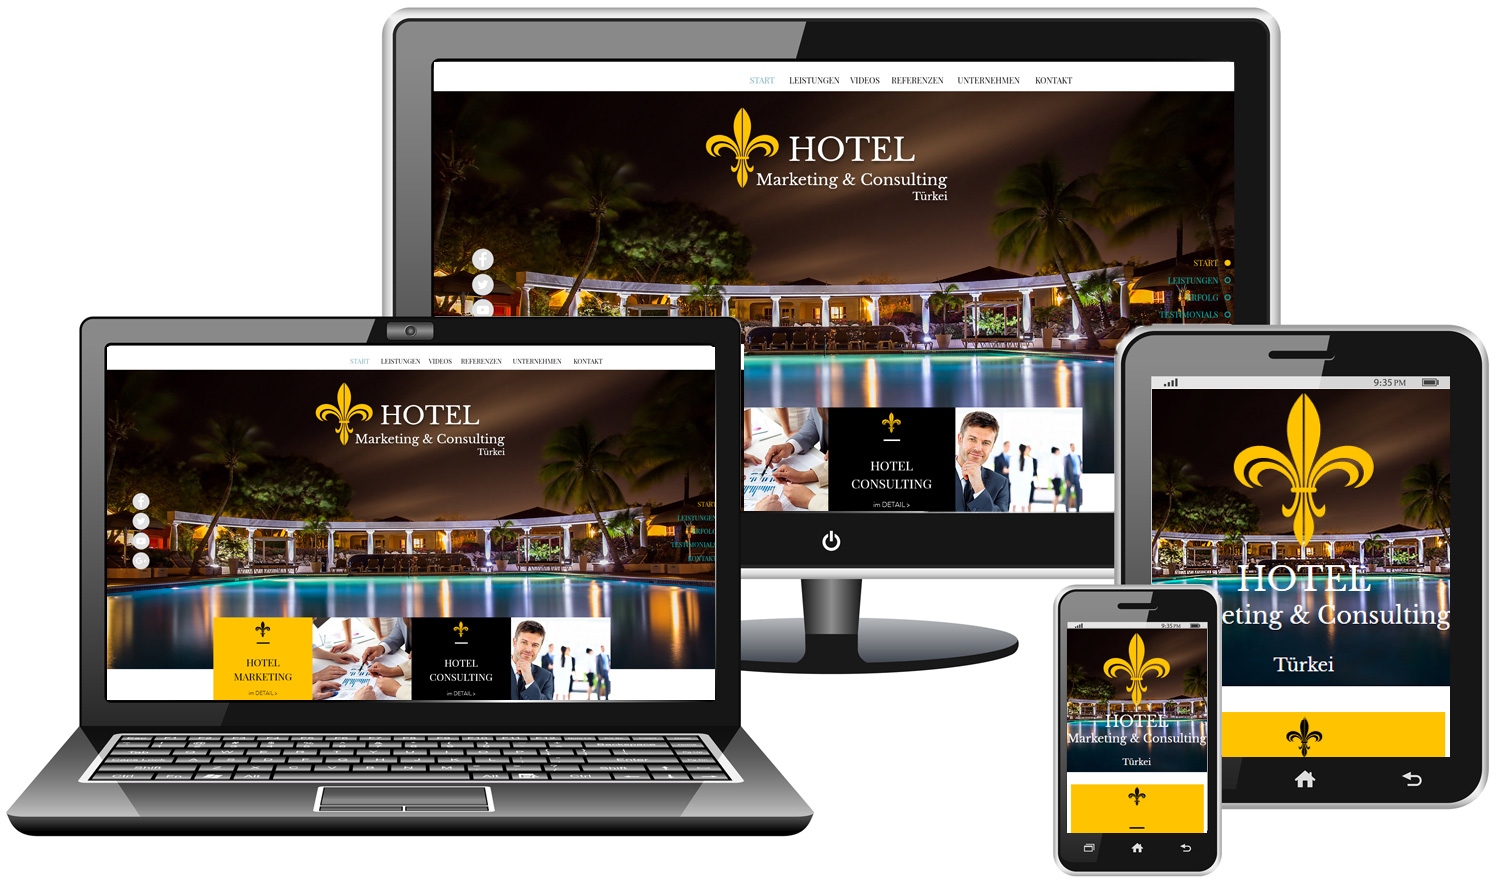 HOTEL MARKETING & CONSULTING